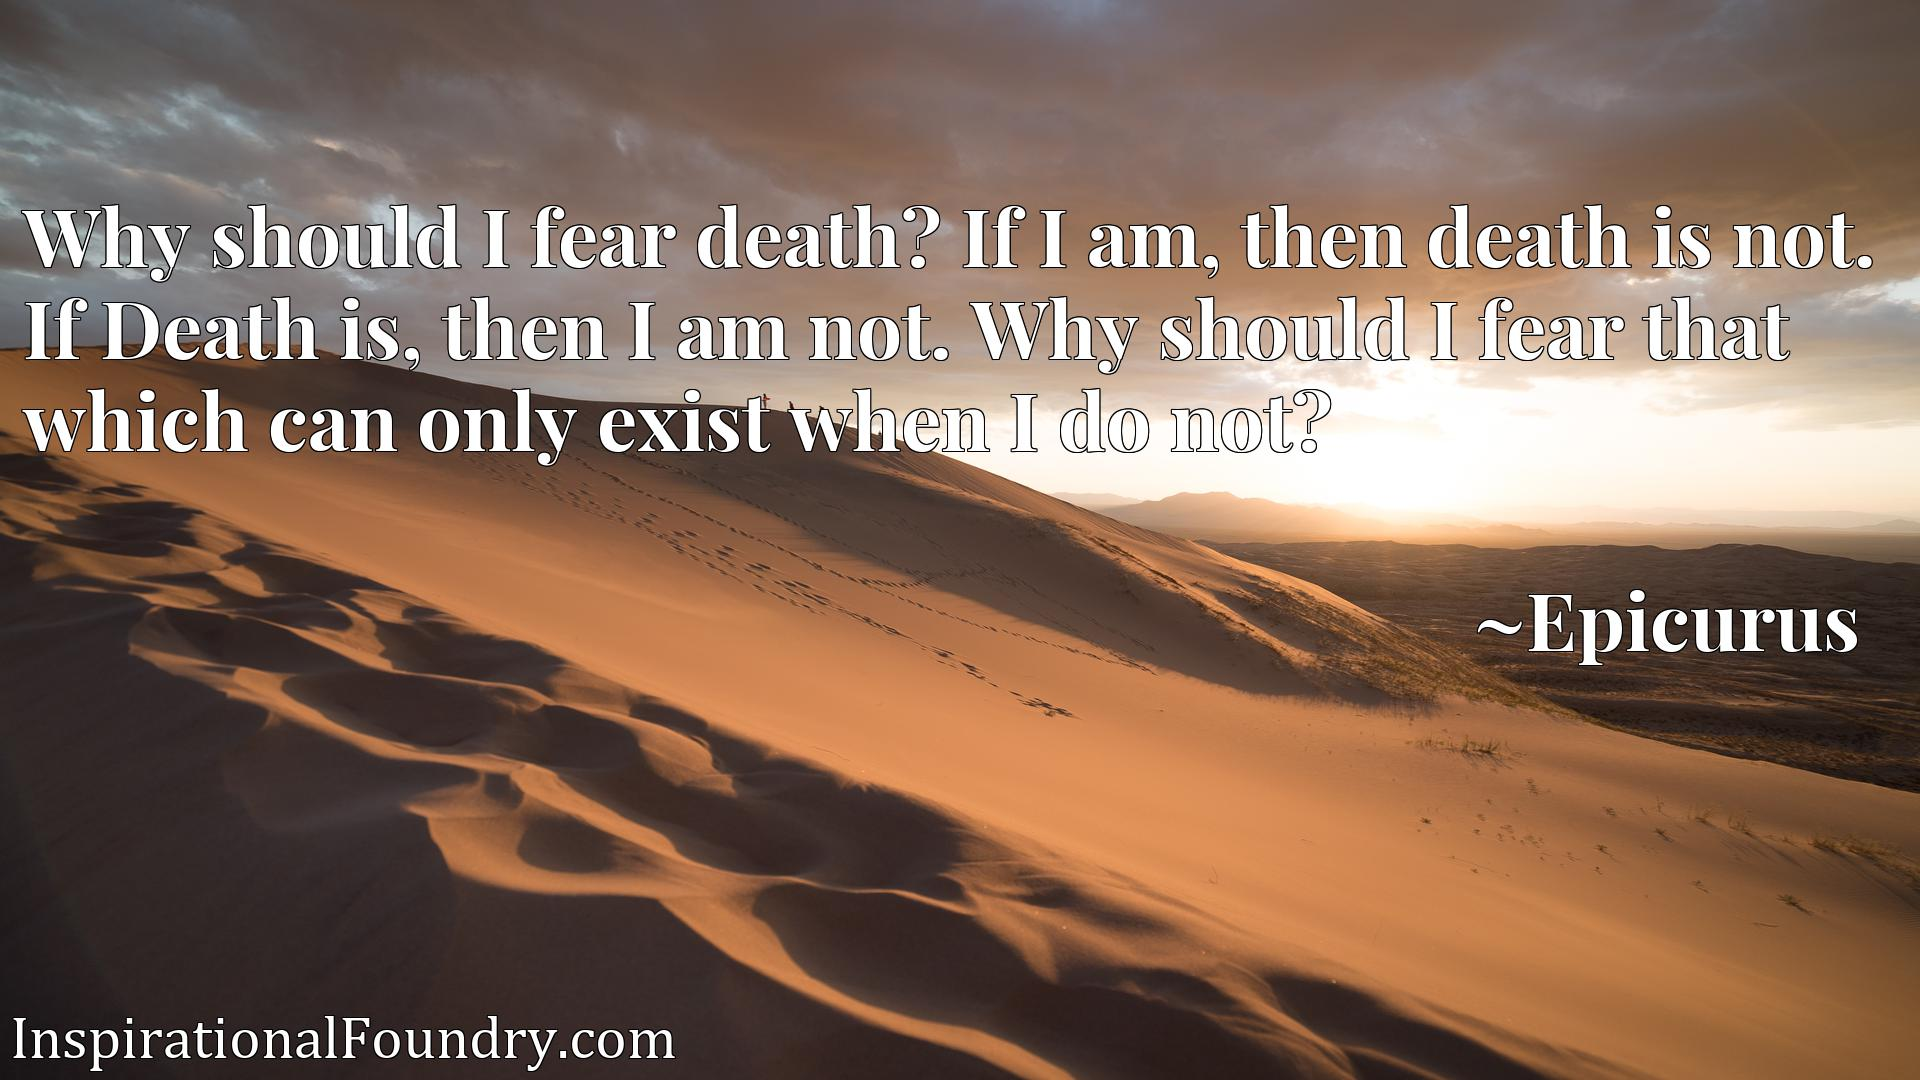 Why should I fear death? If I am, then death is not. If Death is, then I am not. Why should I fear that which can only exist when I do not?